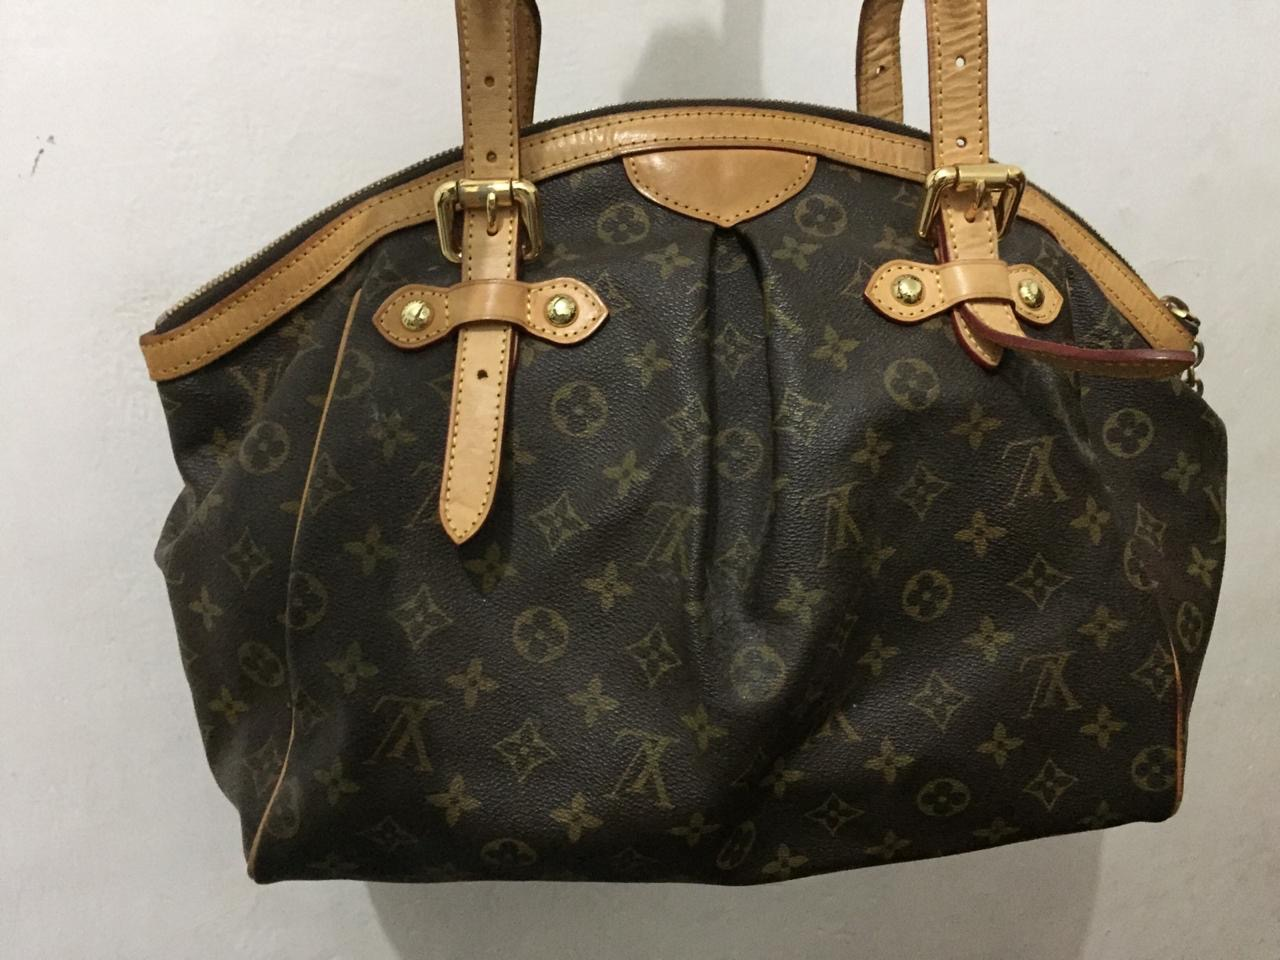 Tivoli Gm Vintage Louis Vuitton Monogram Tivoli Gm Handbag Sp0035